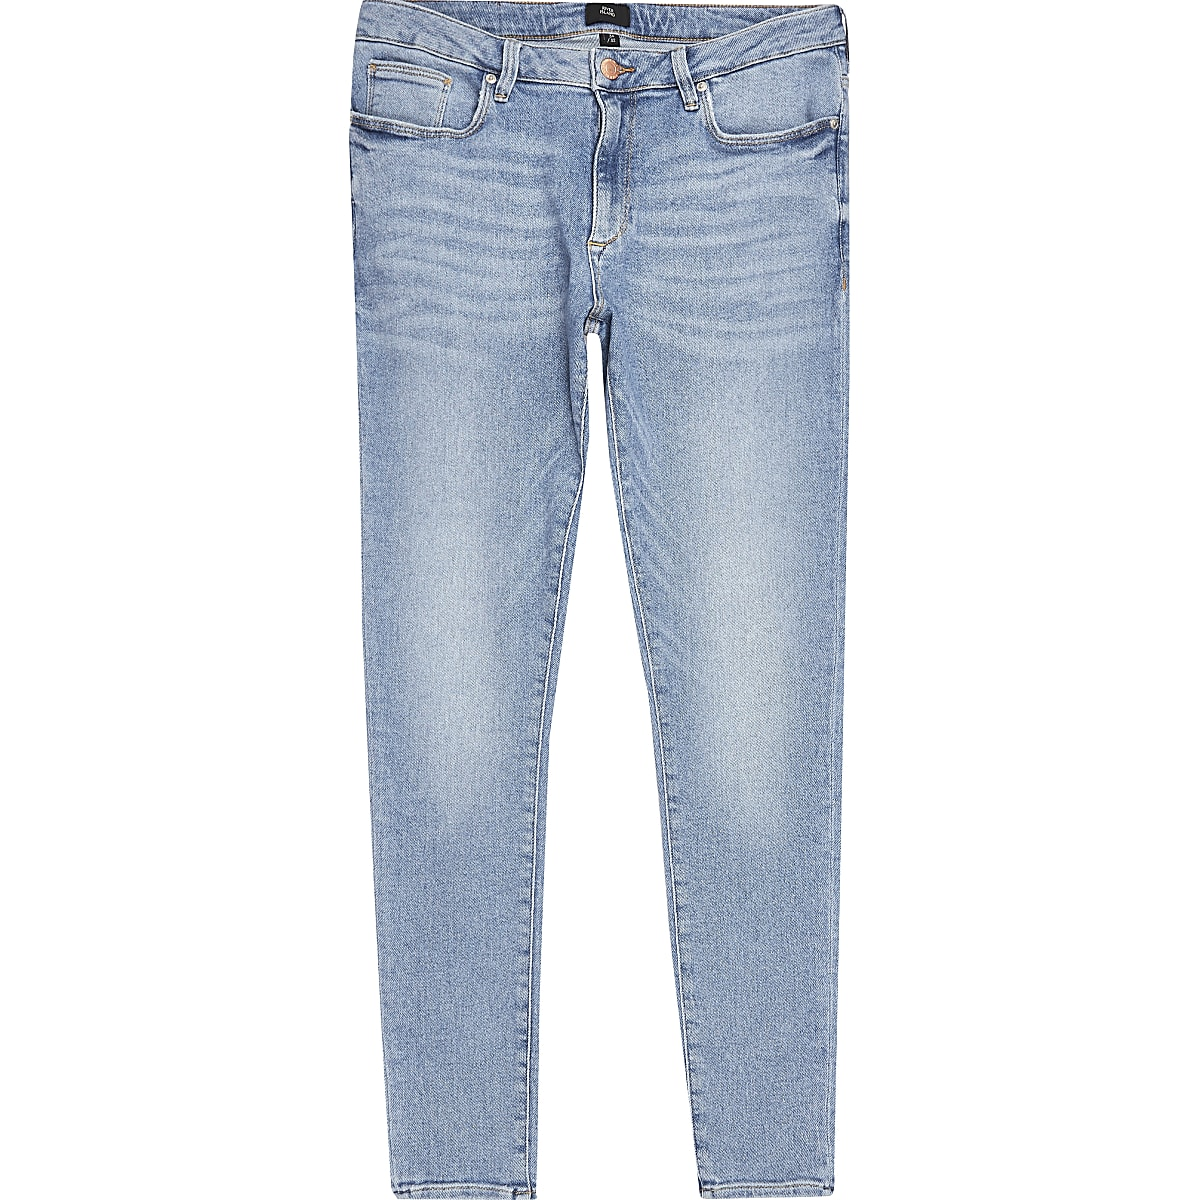 Light blue Ollie spray on jeans